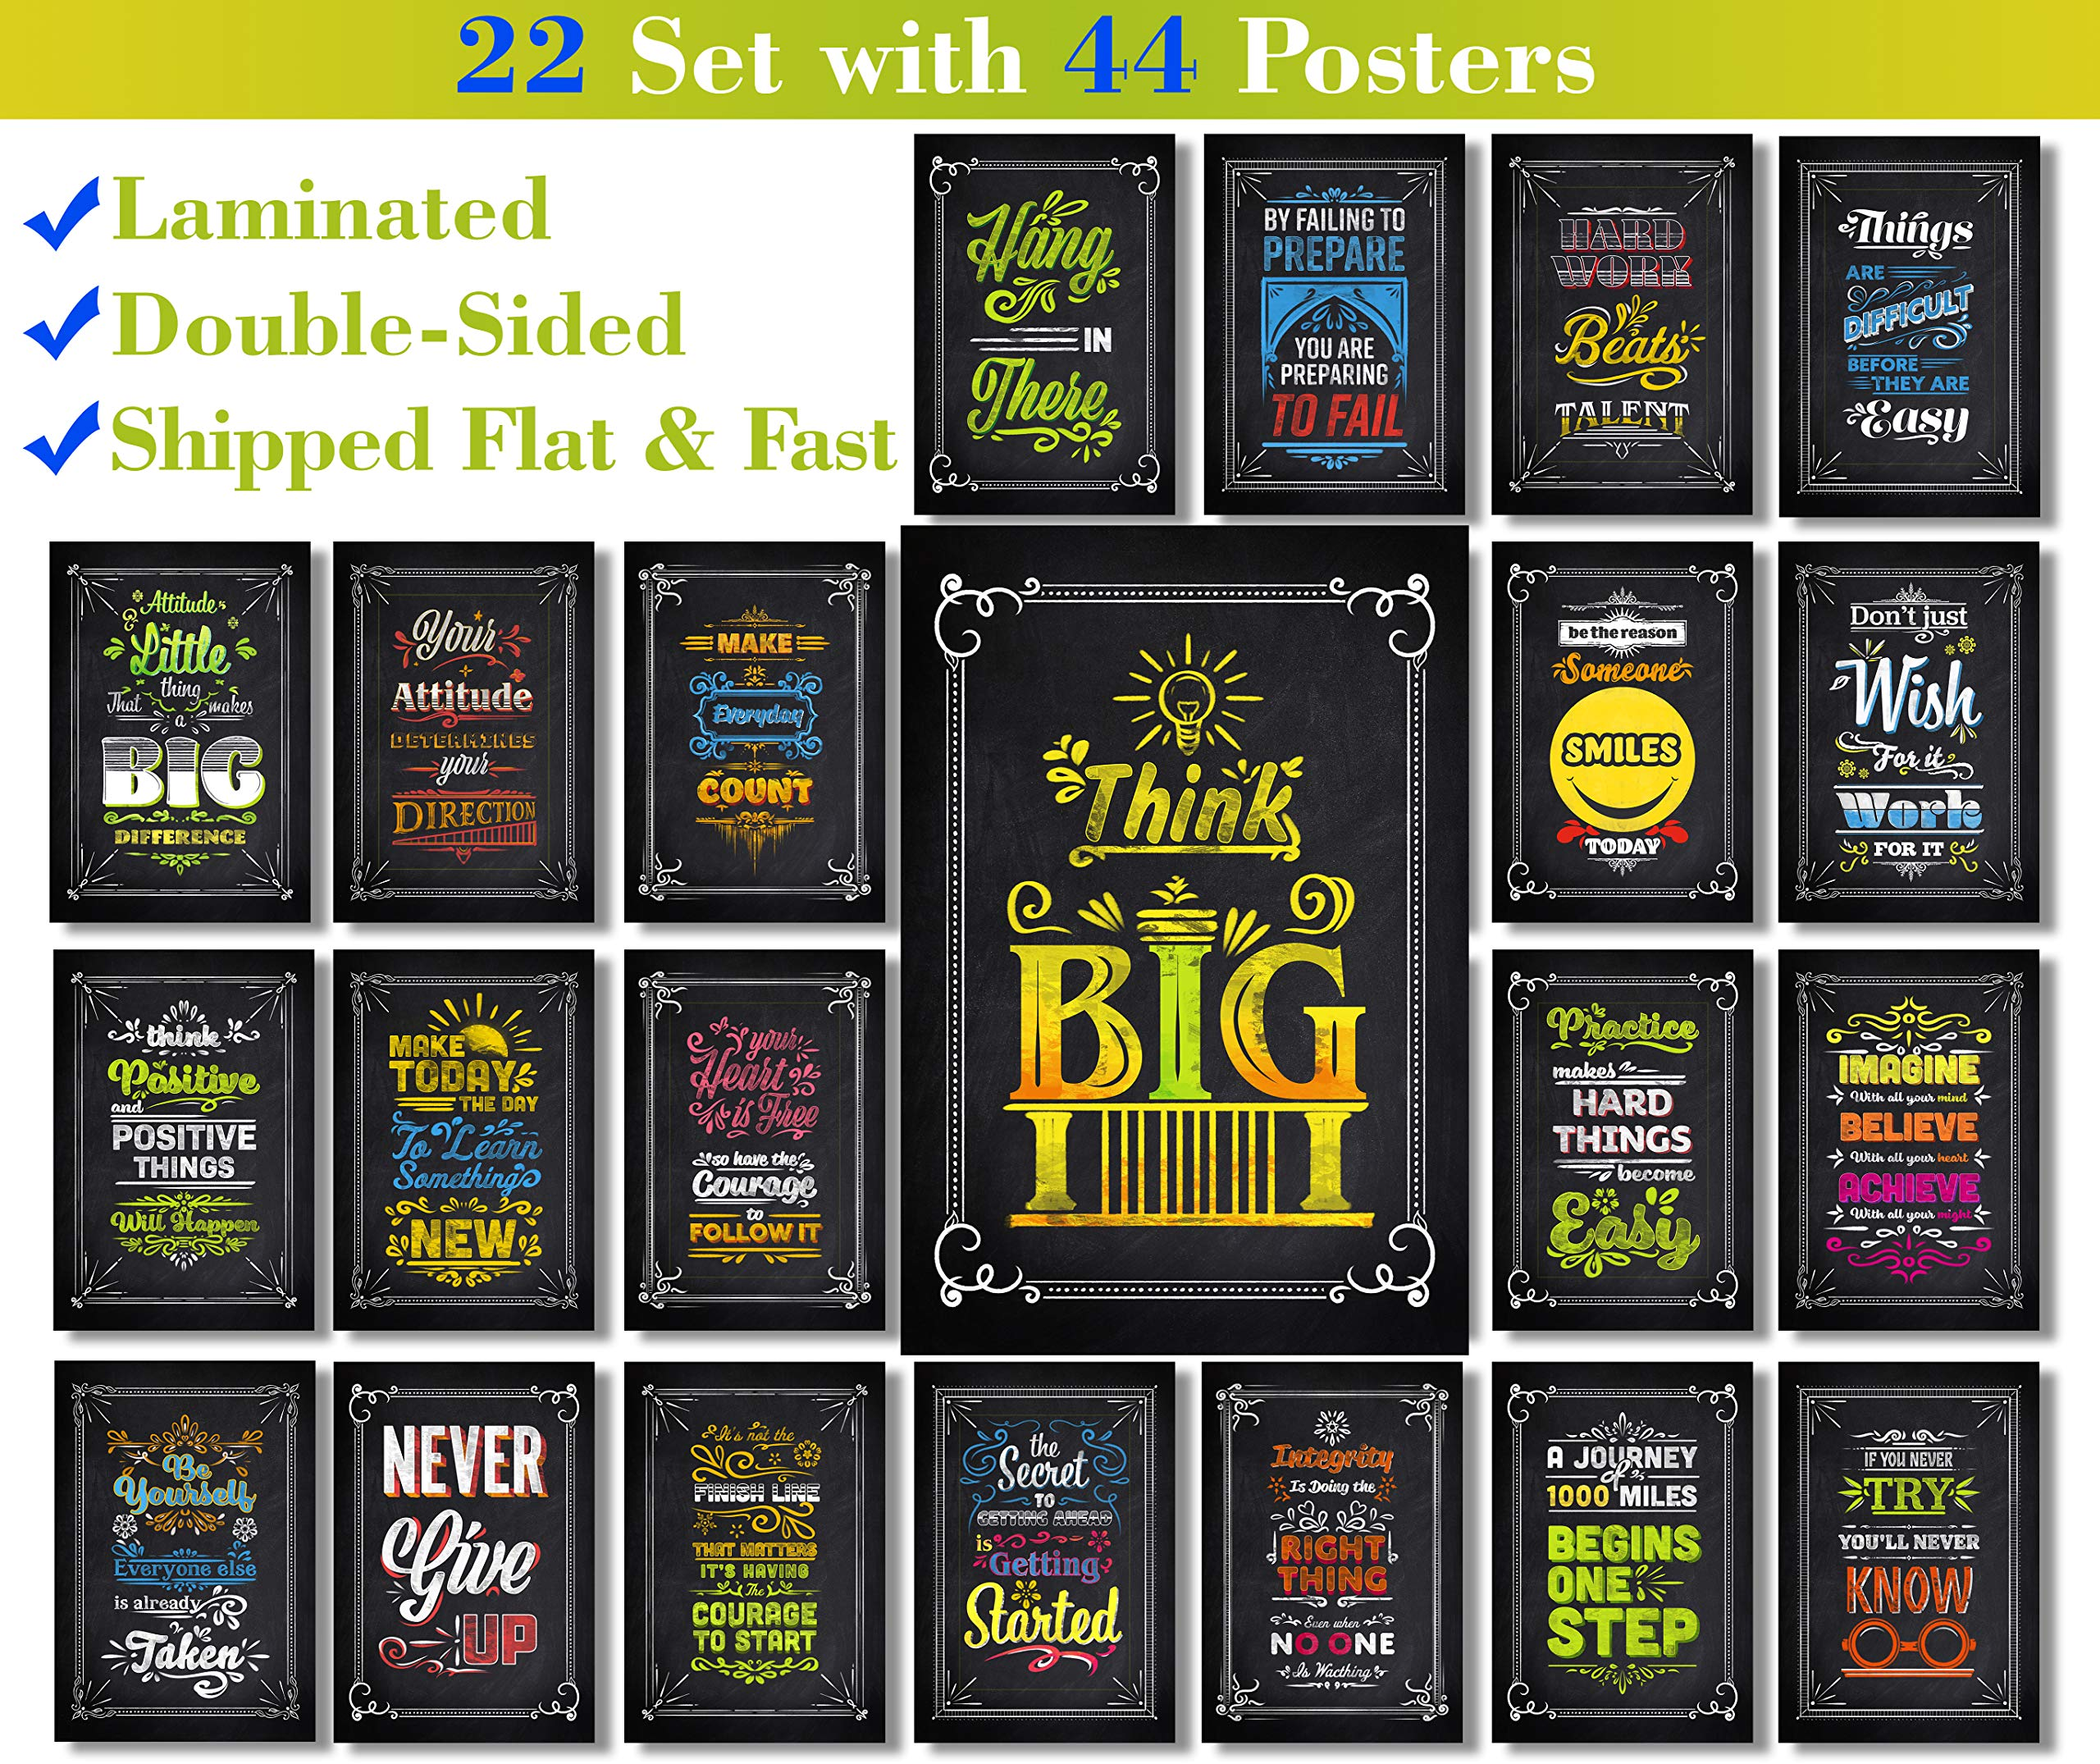 22 Set | 44 Posters | We Ship Flat | Laminated | Motivational and Inspirational Posters with Quotes for The Classroom, Home Wall Art, Office Decorations (Color and Black & White - Double-Sided)